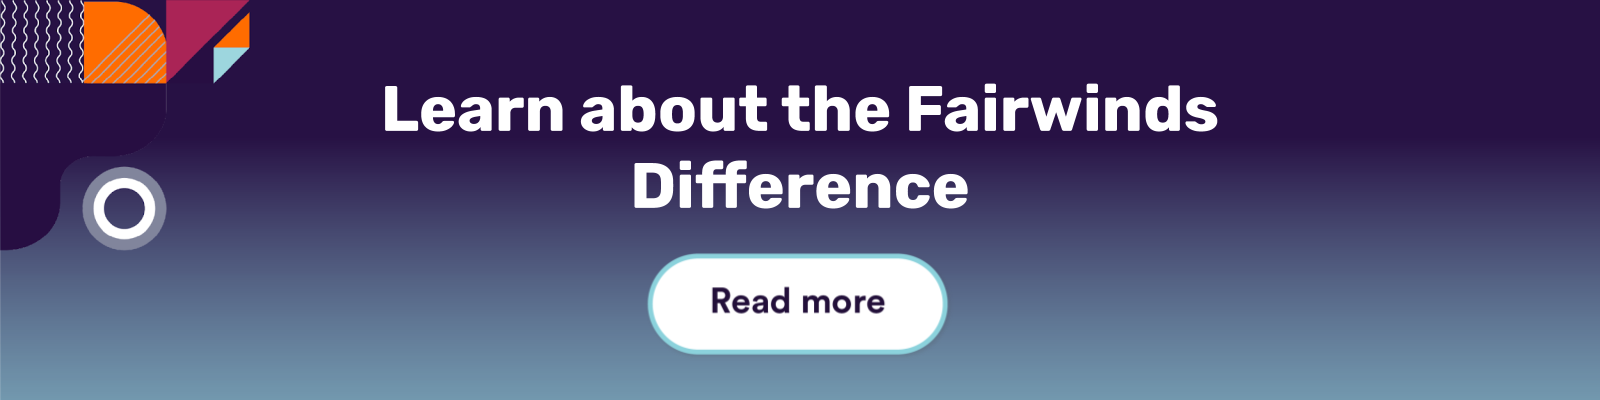 Learn more about the Fairwinds difference